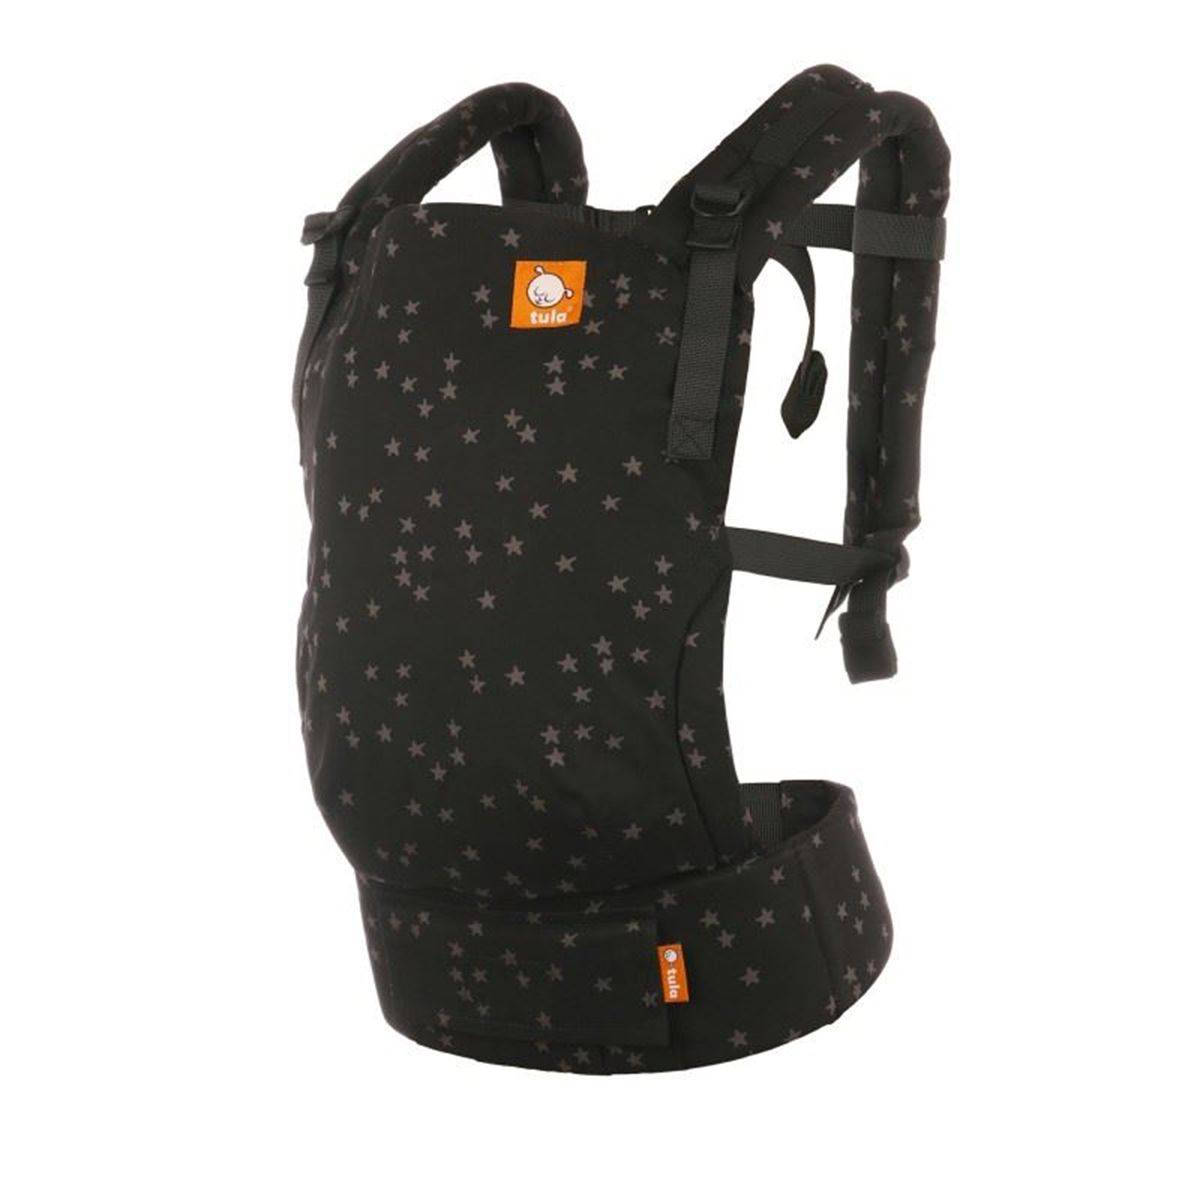 Tula Toddler Bresele, Discover